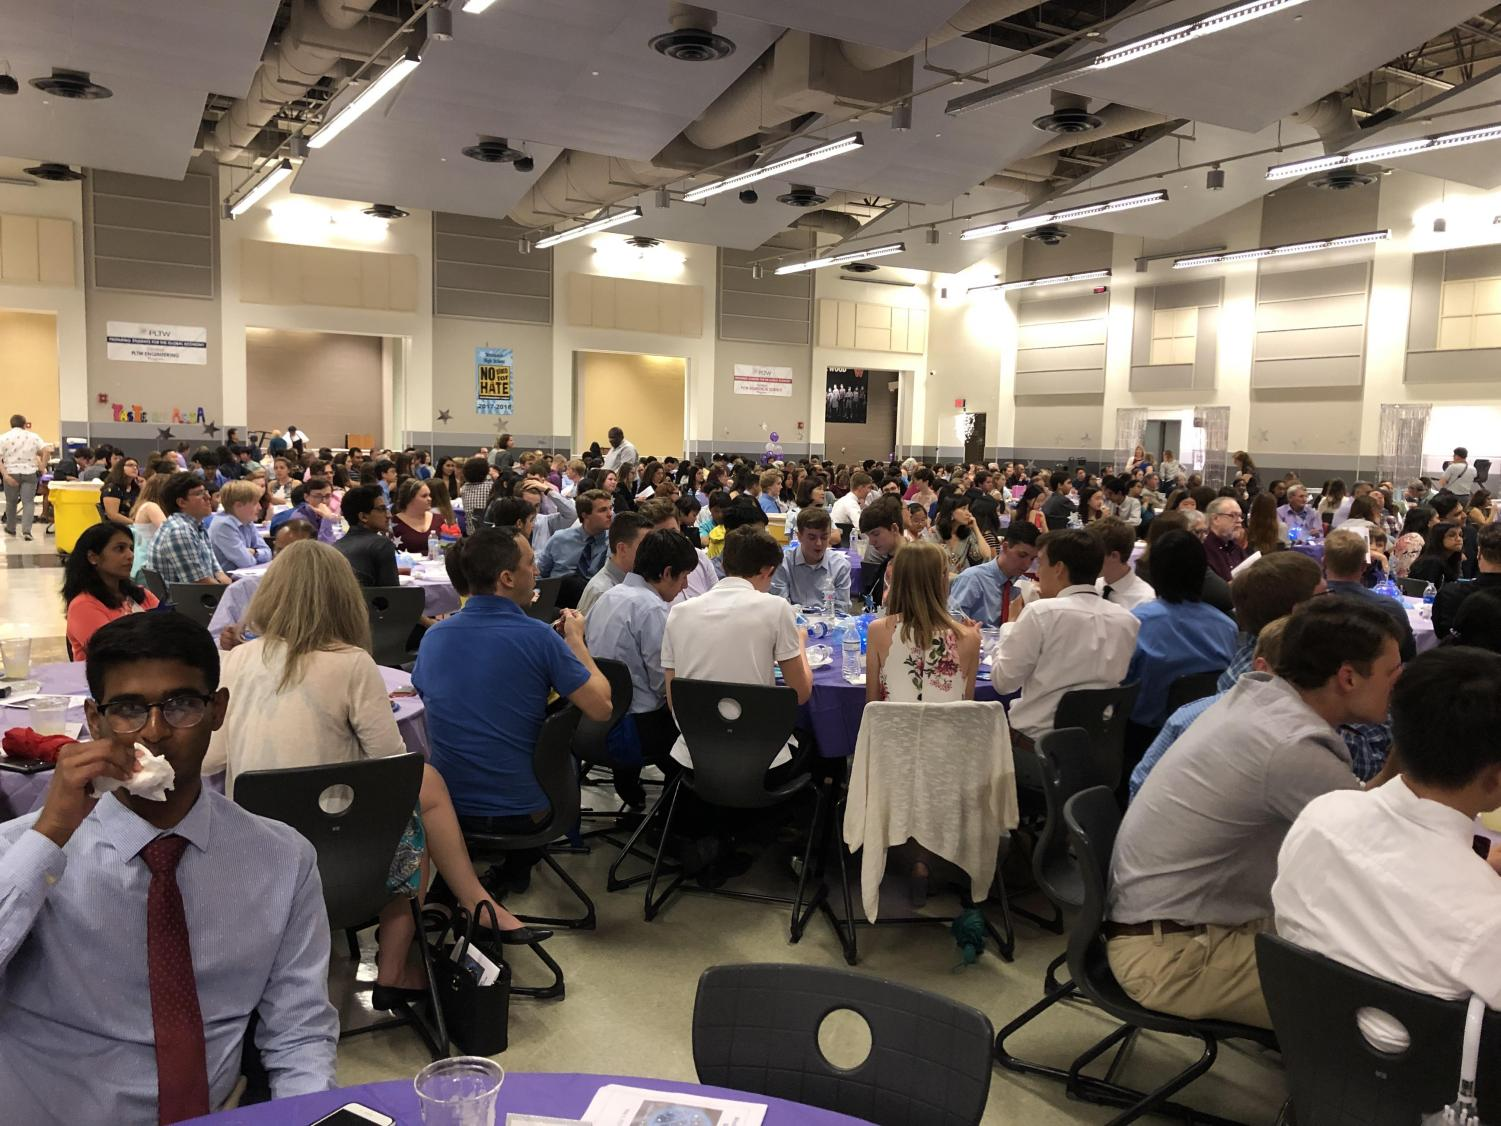 Hundreds+of+band+students+gather+for+the+banquet.